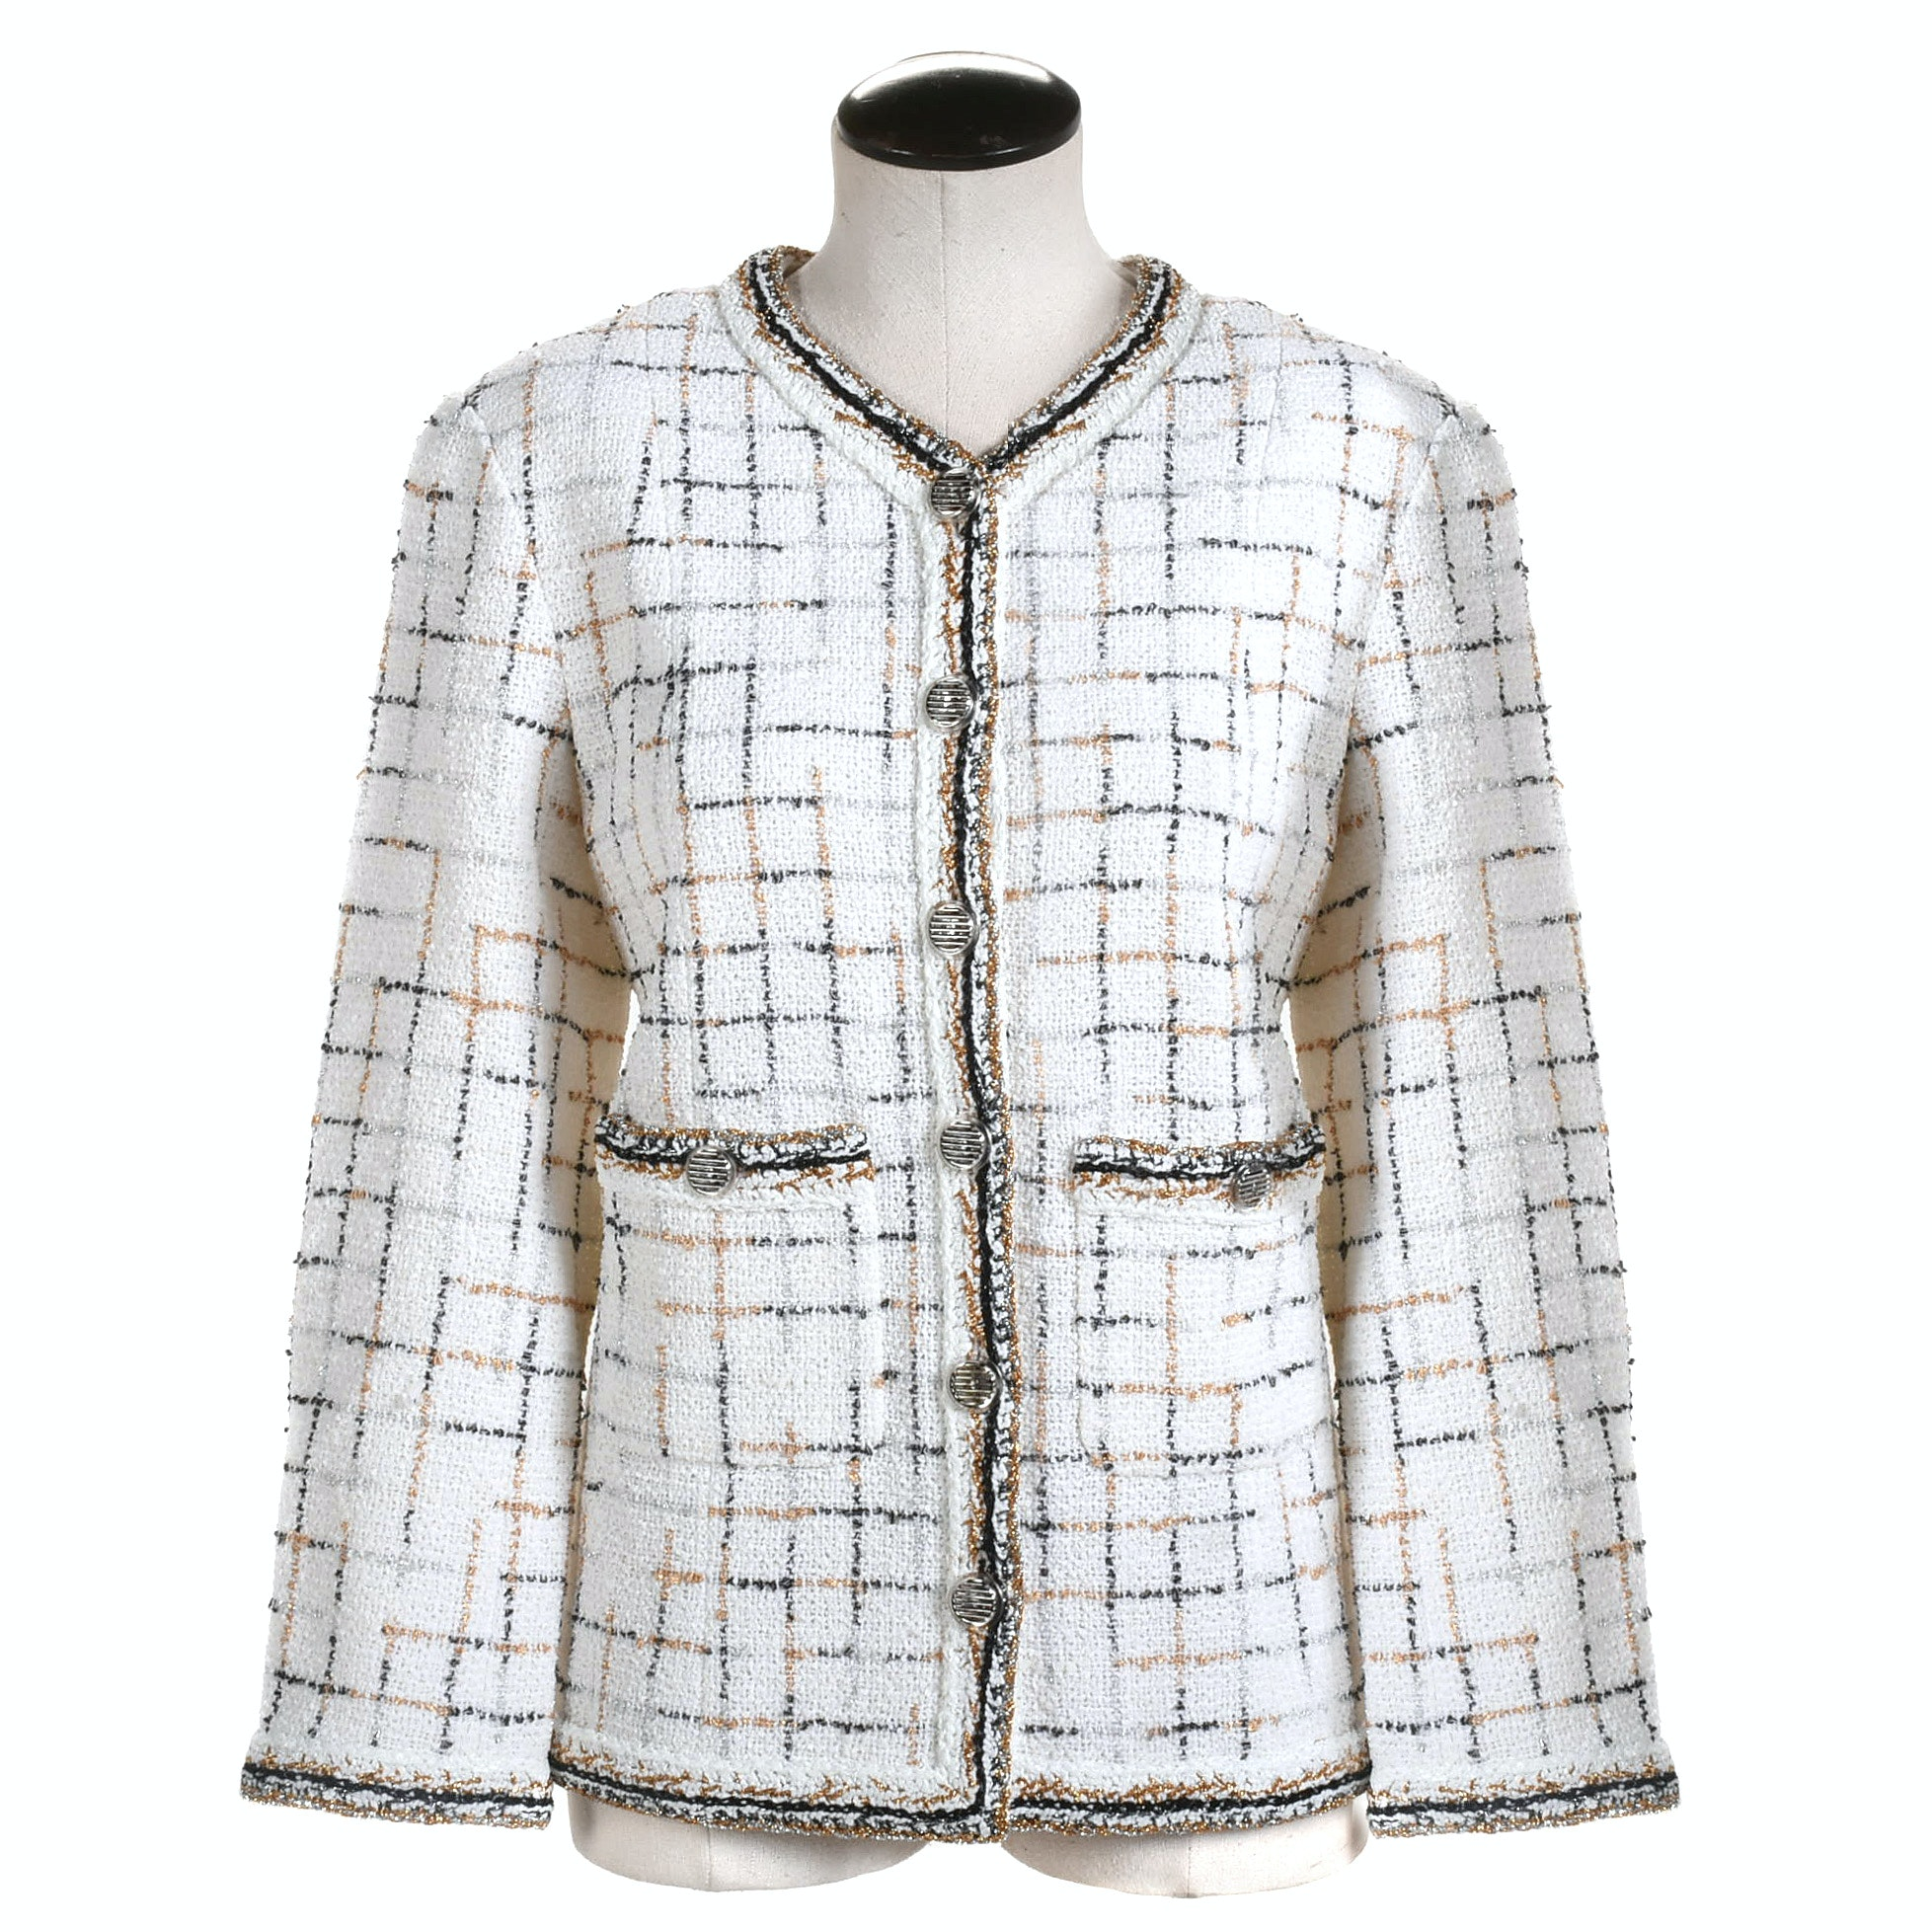 Chanel White Bouclé Jacket with Window Pane Pattern and Metallic Trim, France